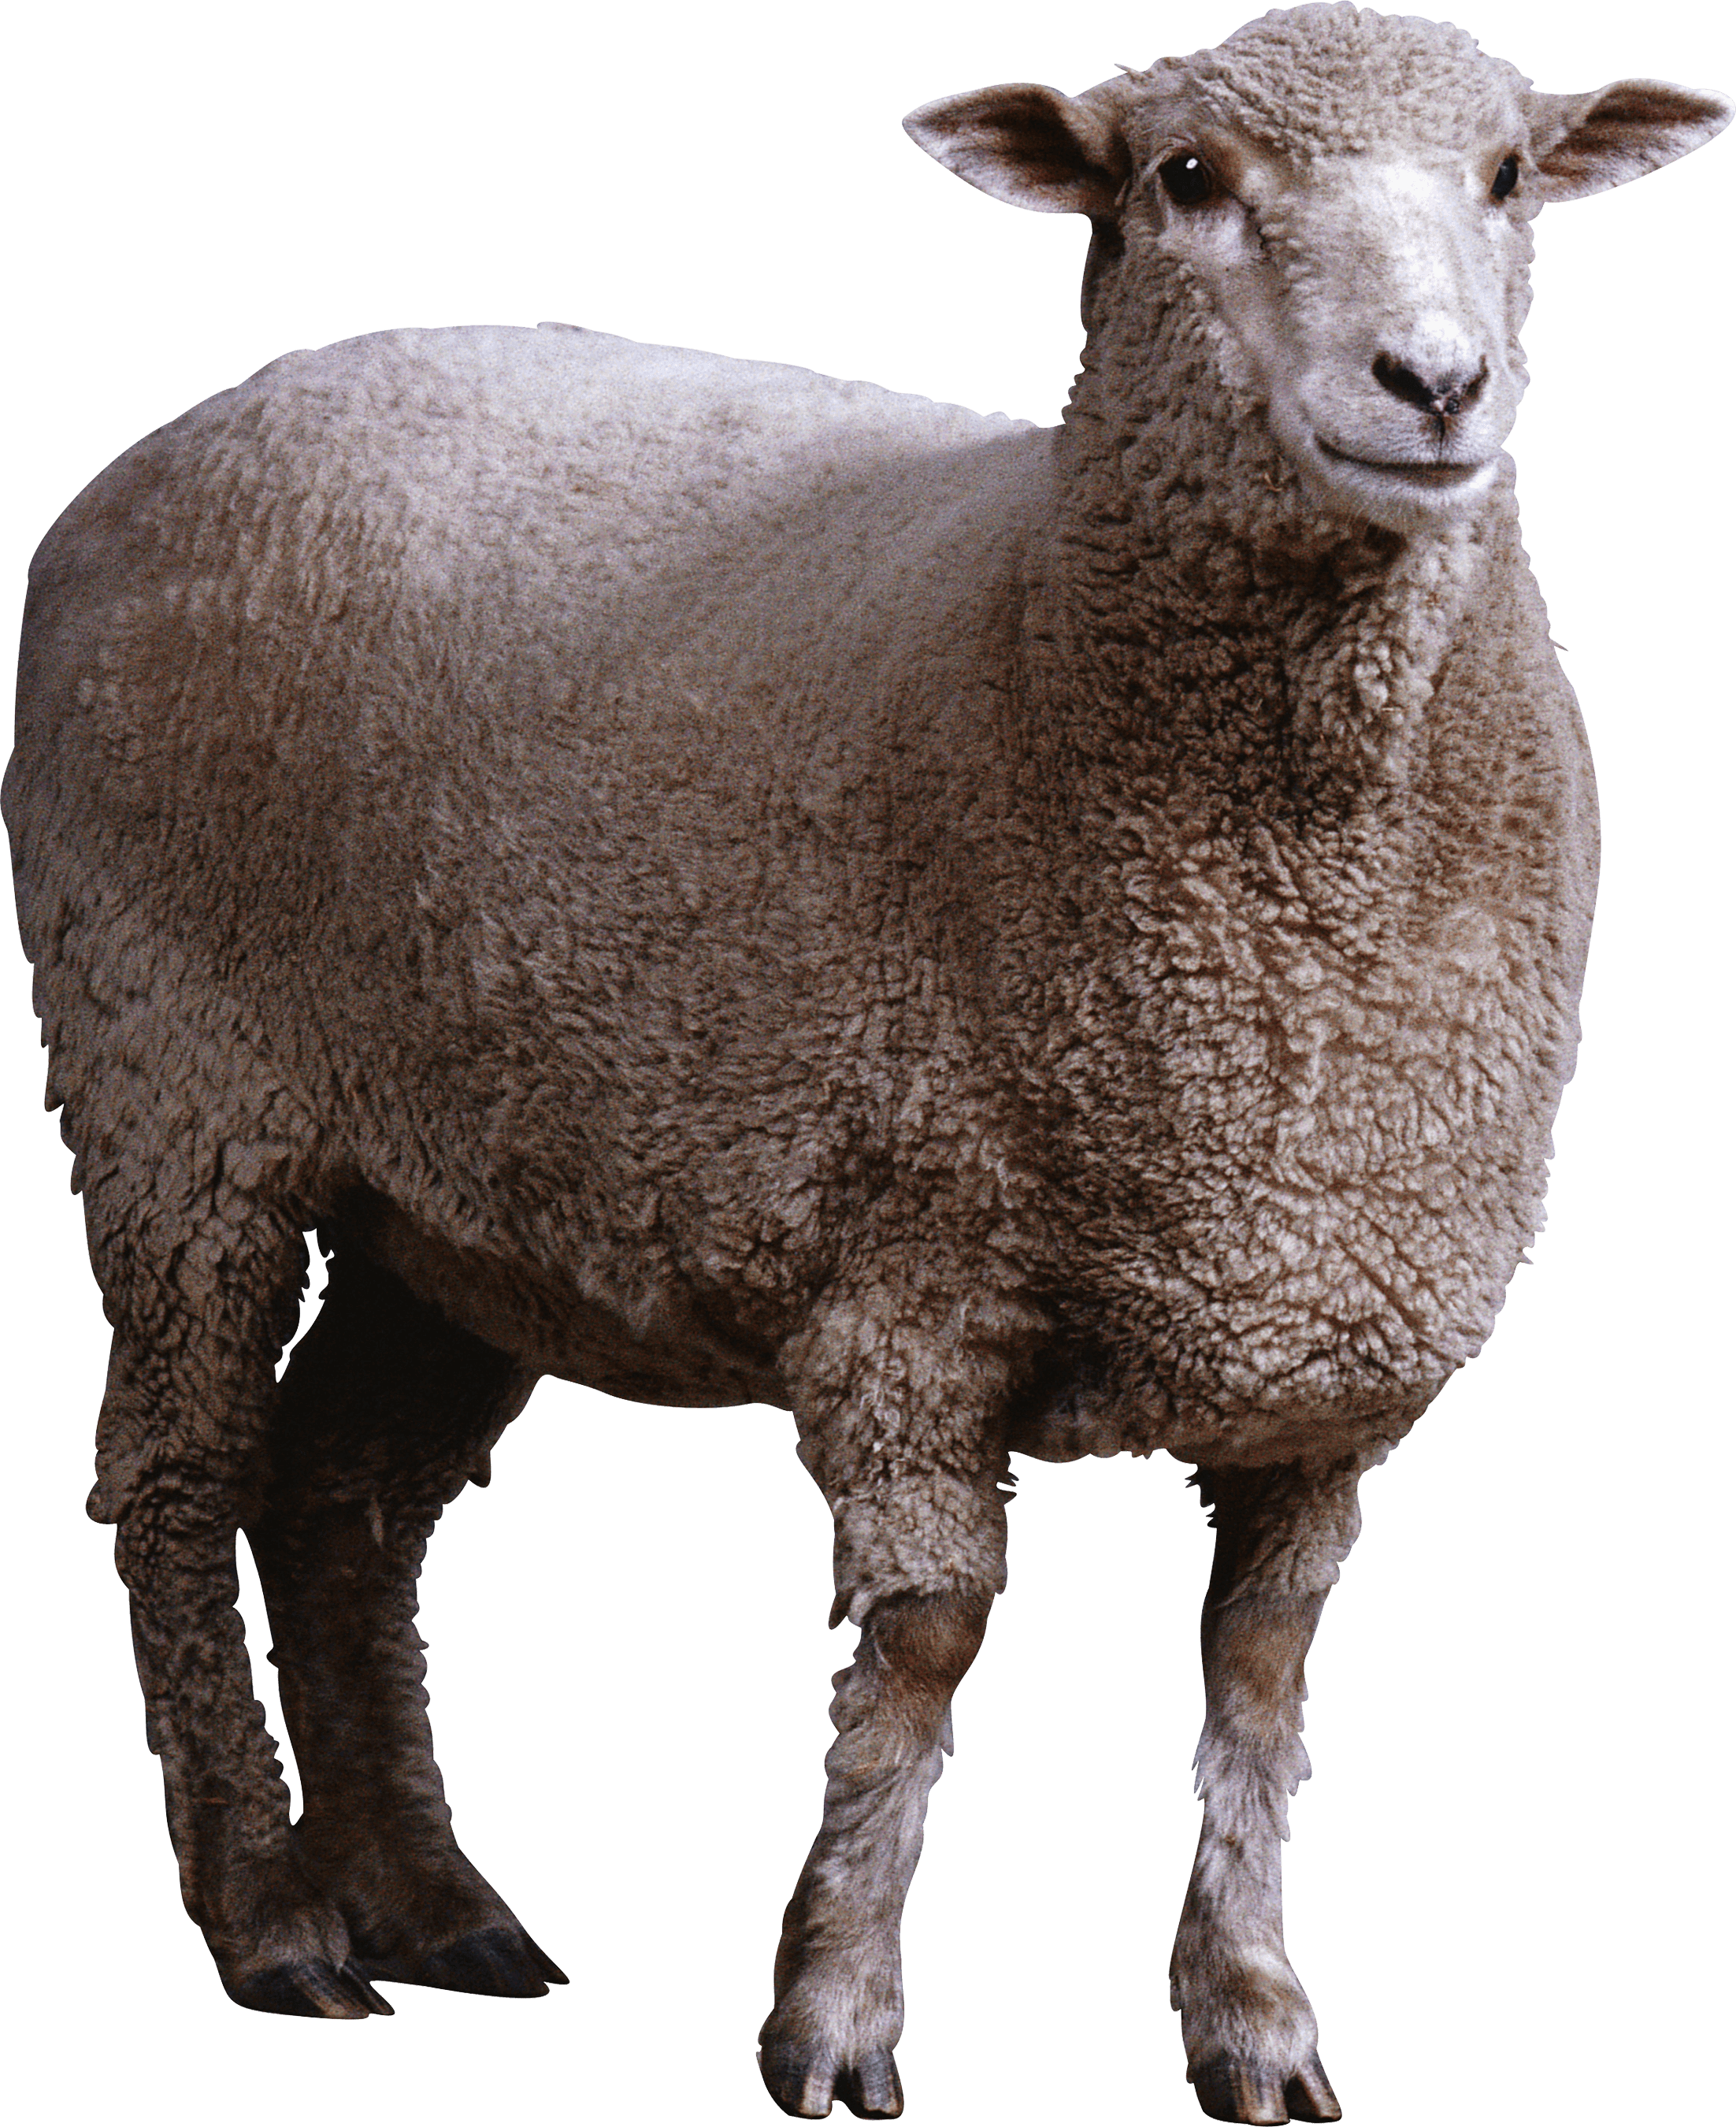 Sheep Png Image PNG Image - Sheep HD PNG